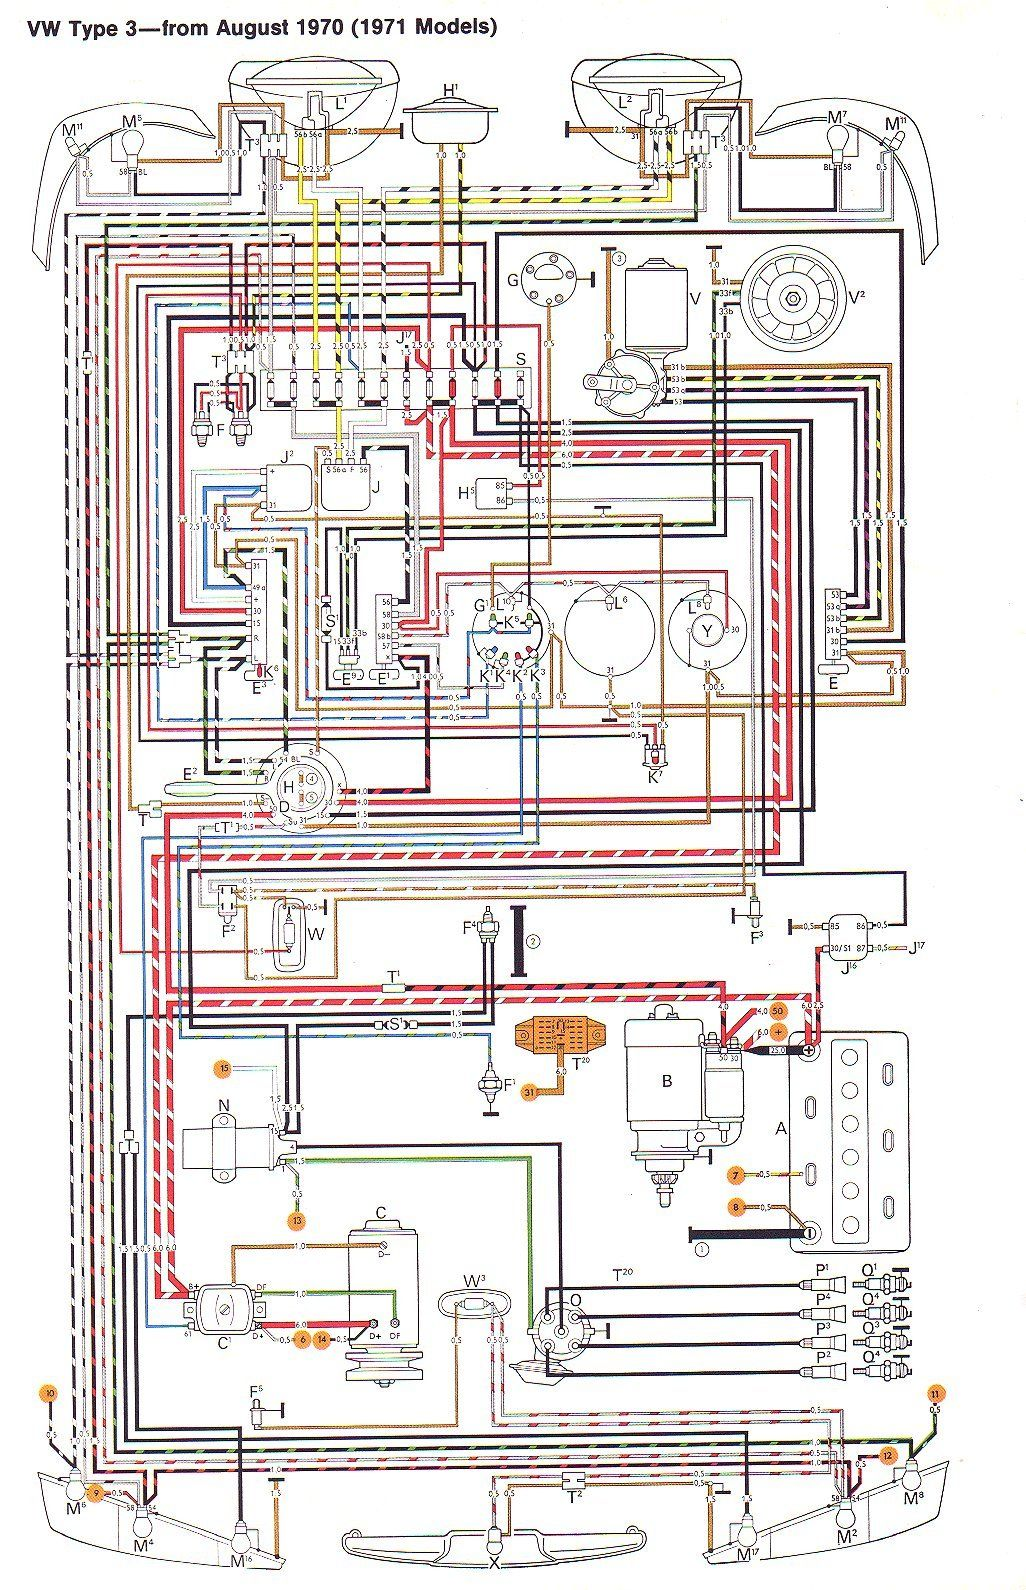 e0db58370f79a63d02d45f00cf63f44a 71 vw t3 wiring diagram car projects pinterest volkswagen 1971 vw bus wiring diagram at mifinder.co